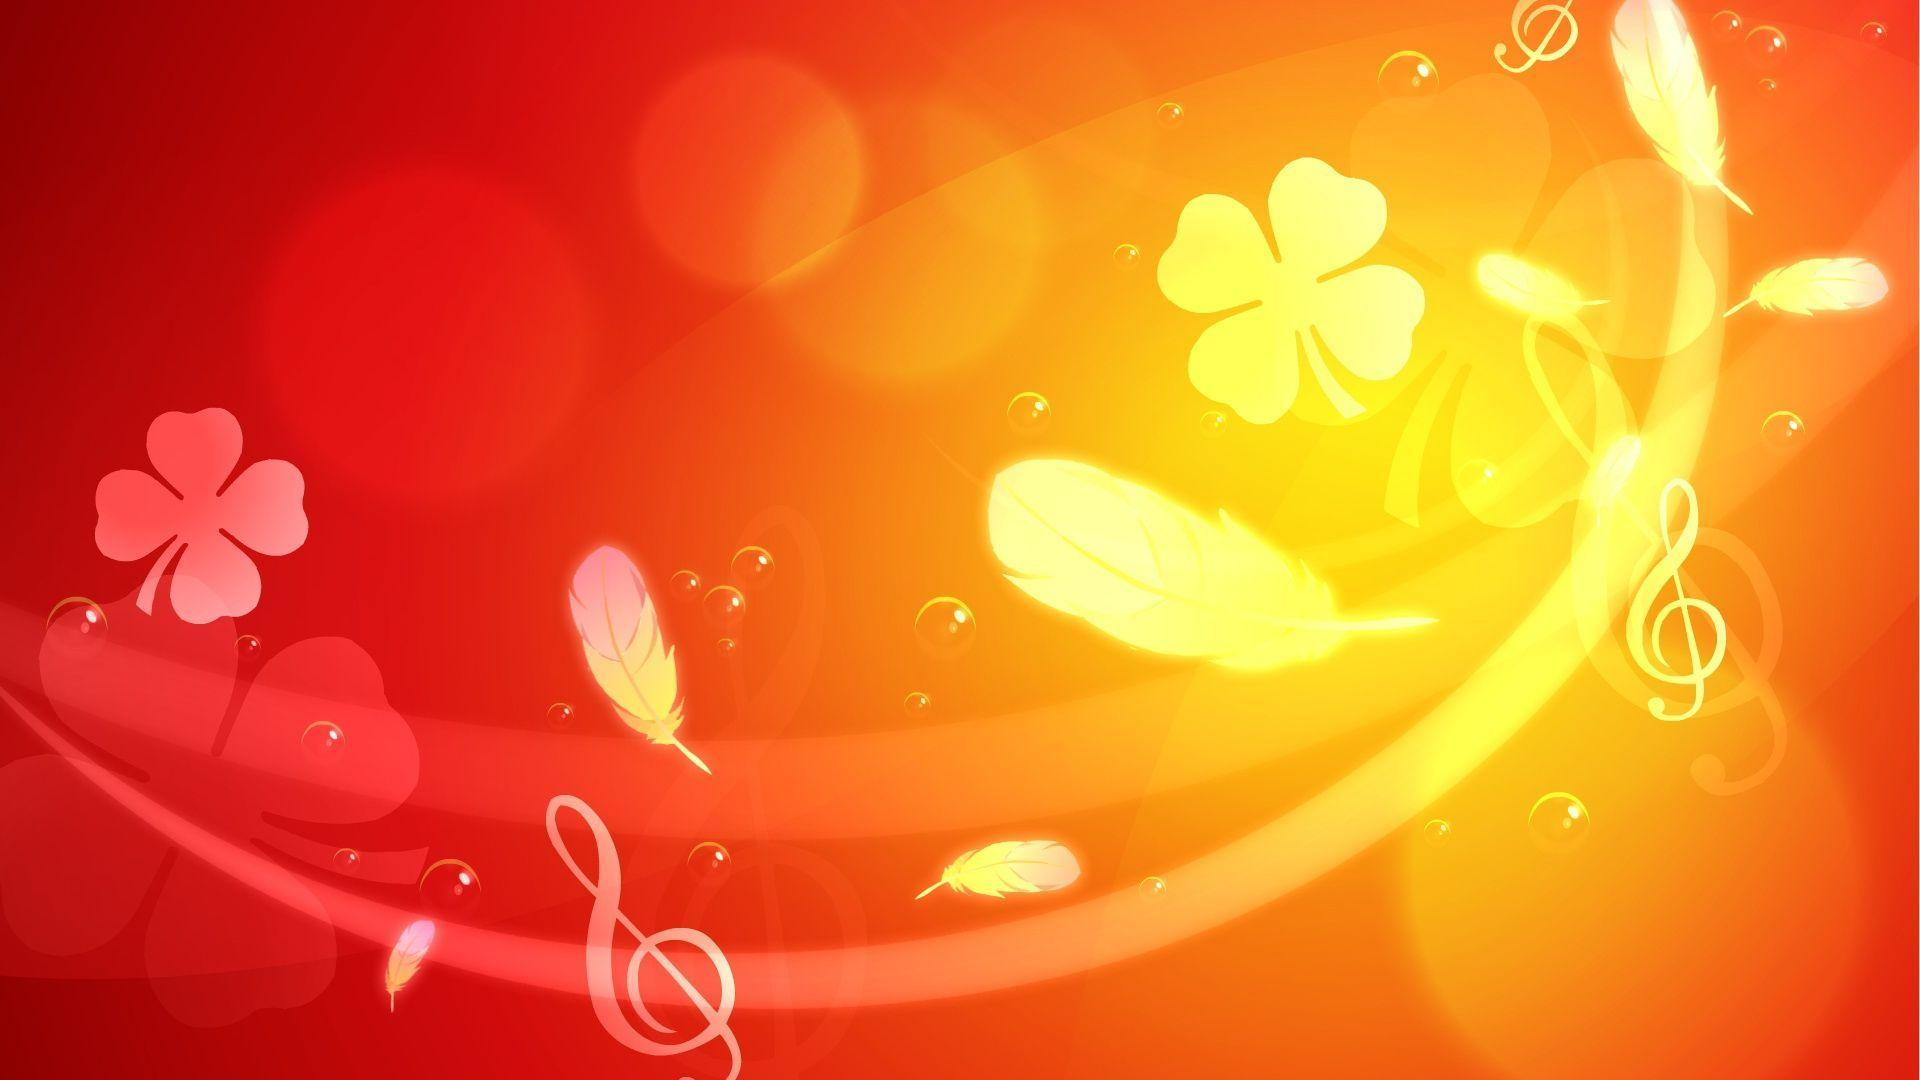 light backgrounds designs - photo #23